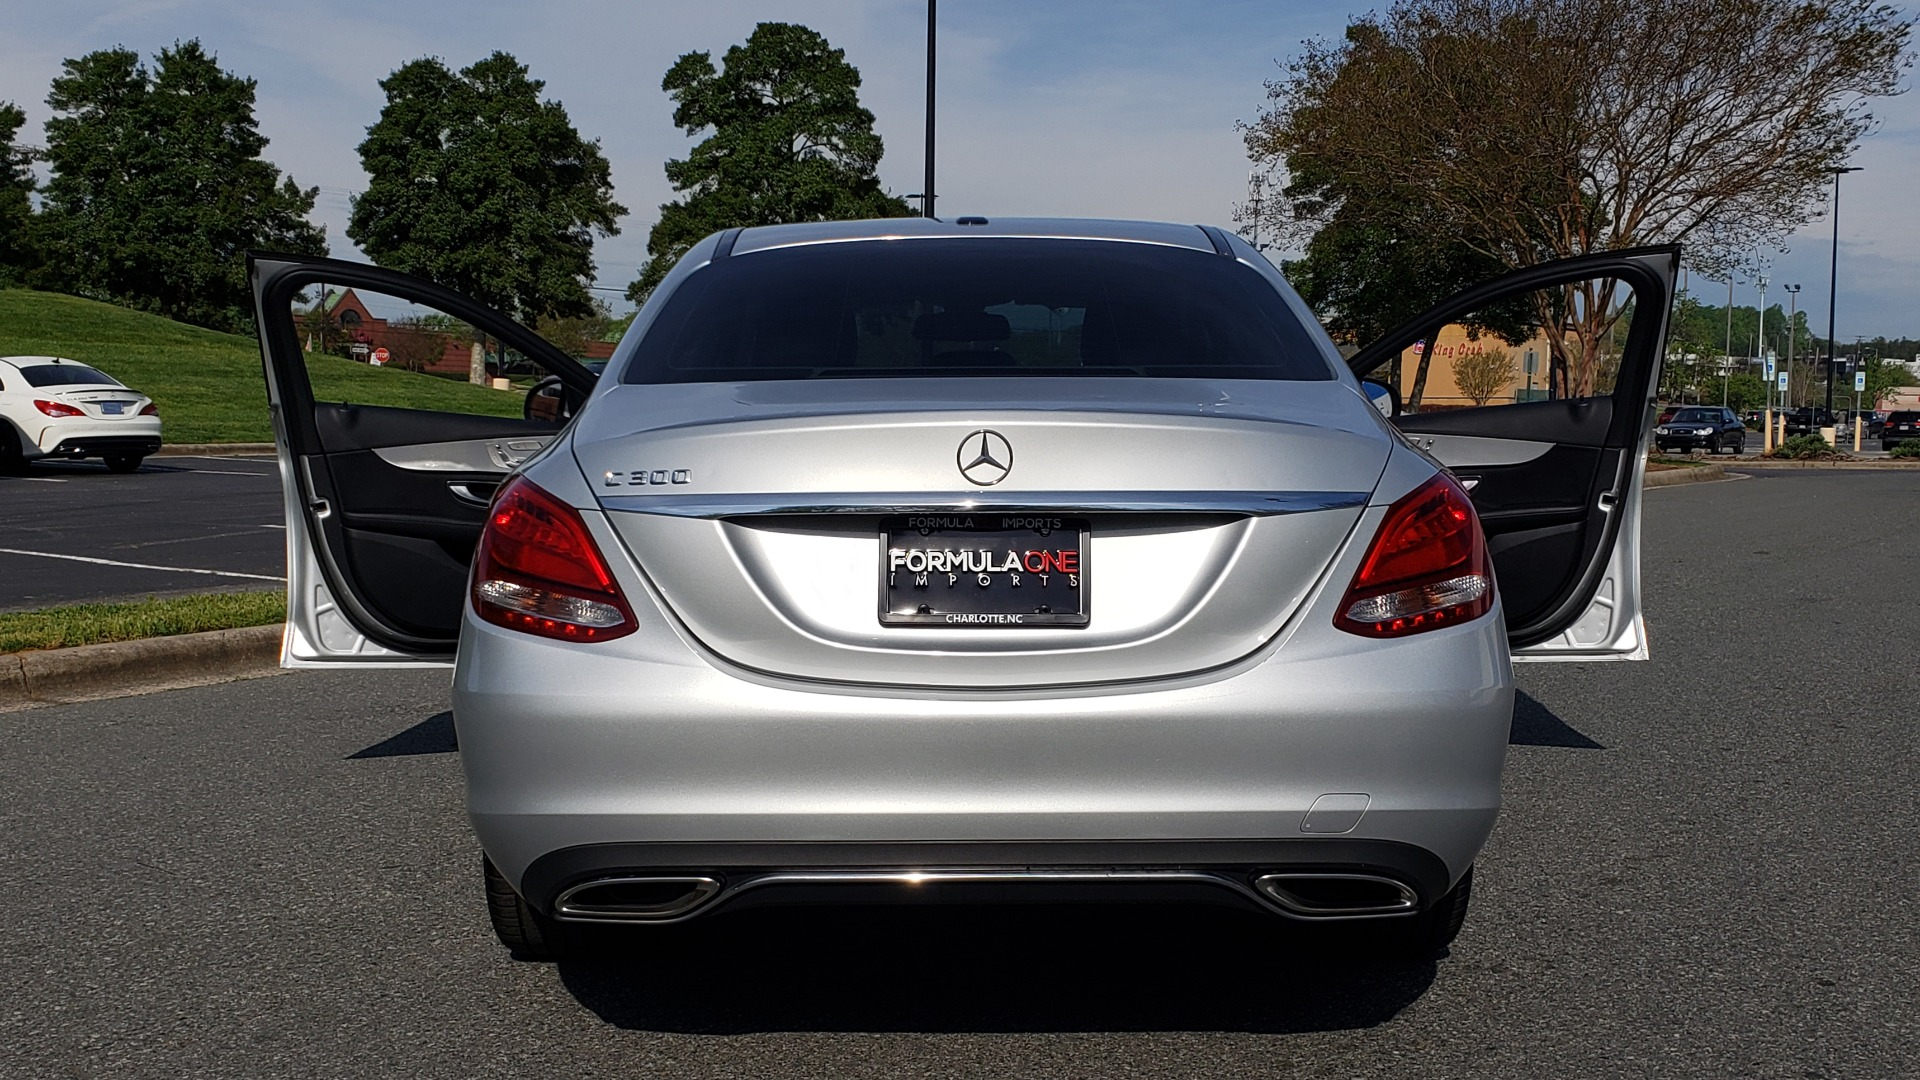 Used 2016 Mercedes-Benz C-CLASS C 300 PREMIUM / NAV / SNRF/ HTD STS / REARVIEW / BSM for sale Sold at Formula Imports in Charlotte NC 28227 18